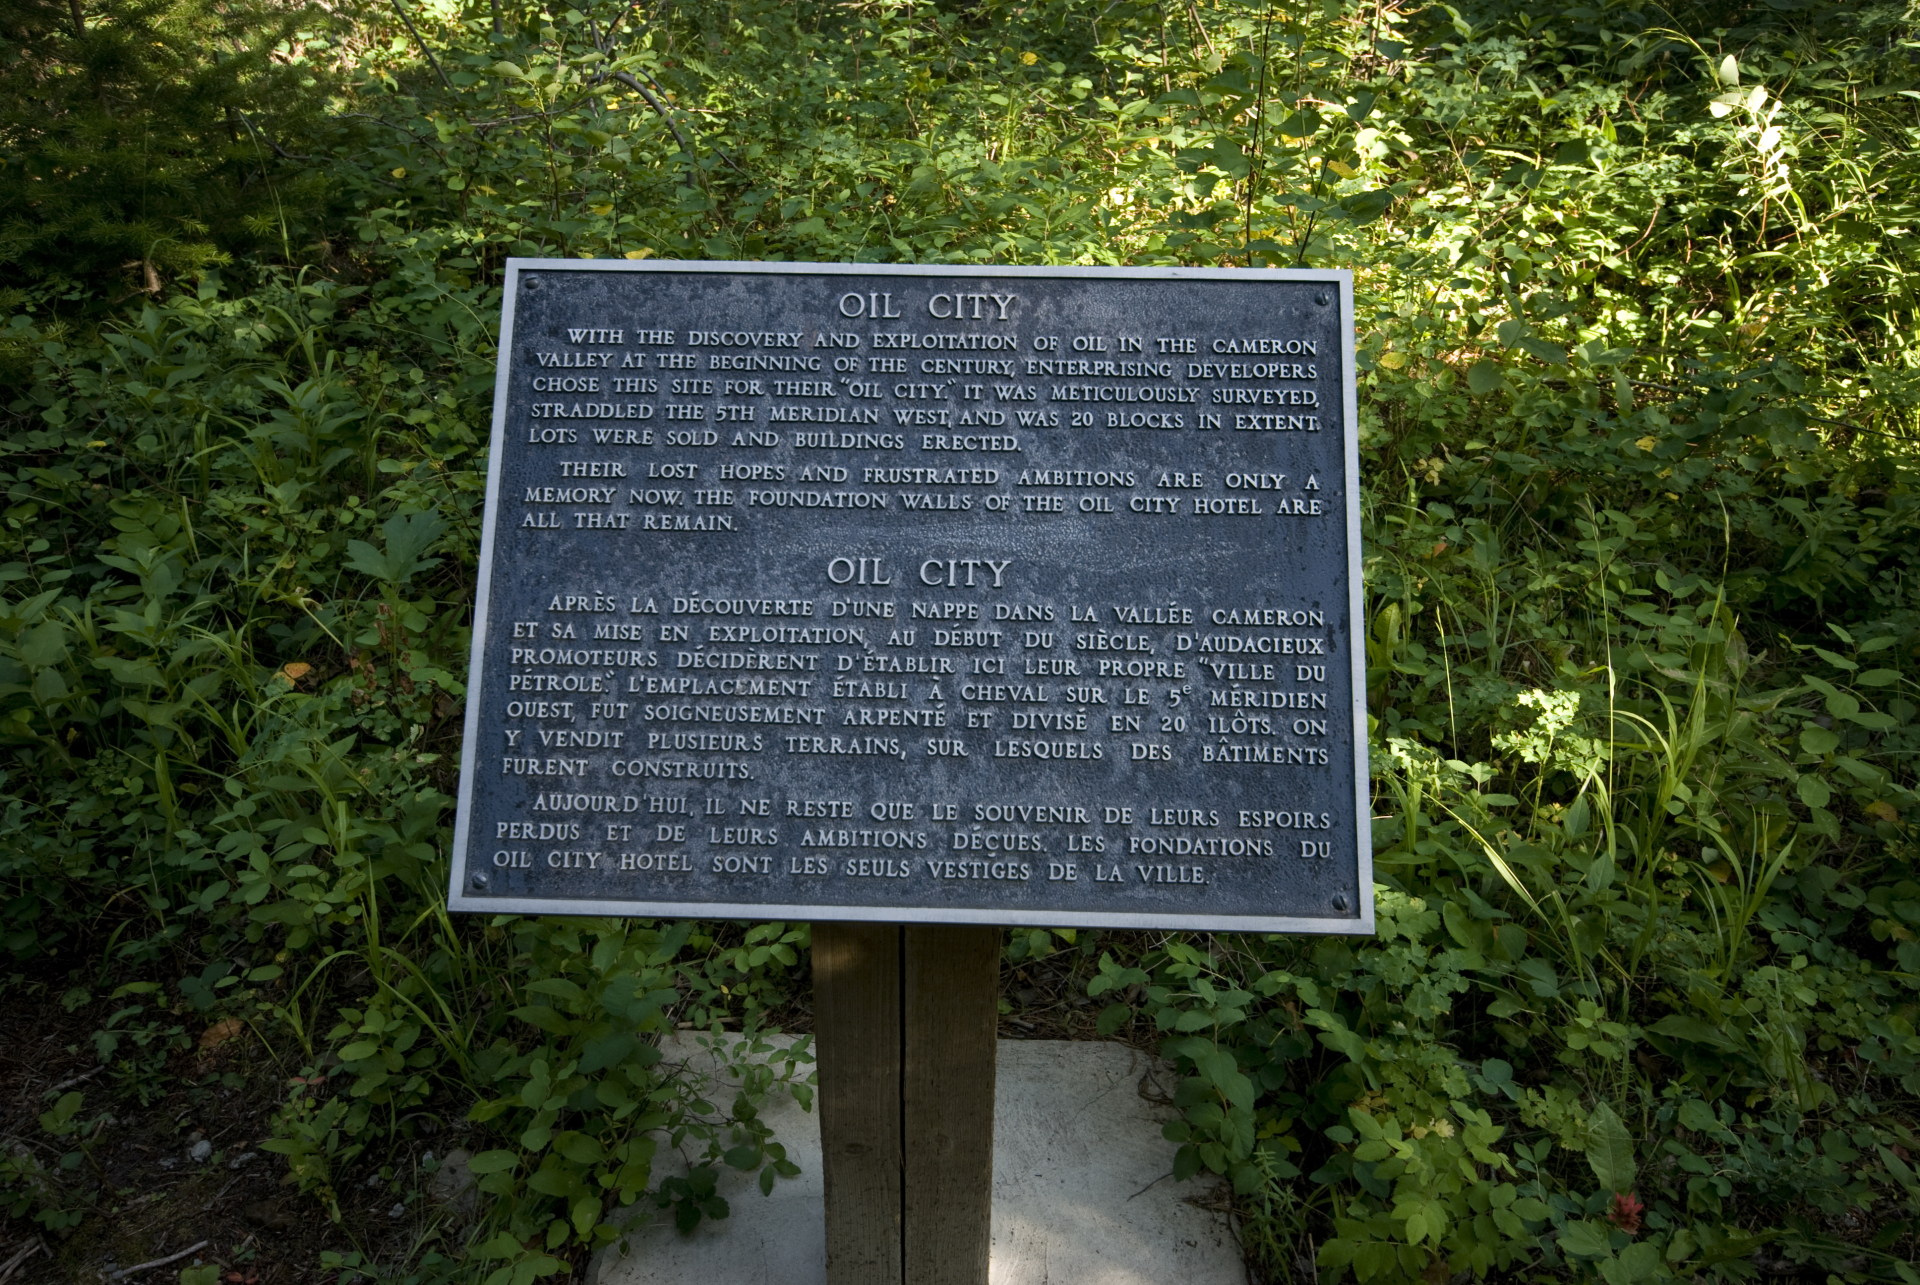 Plaque marking the location of Oil City